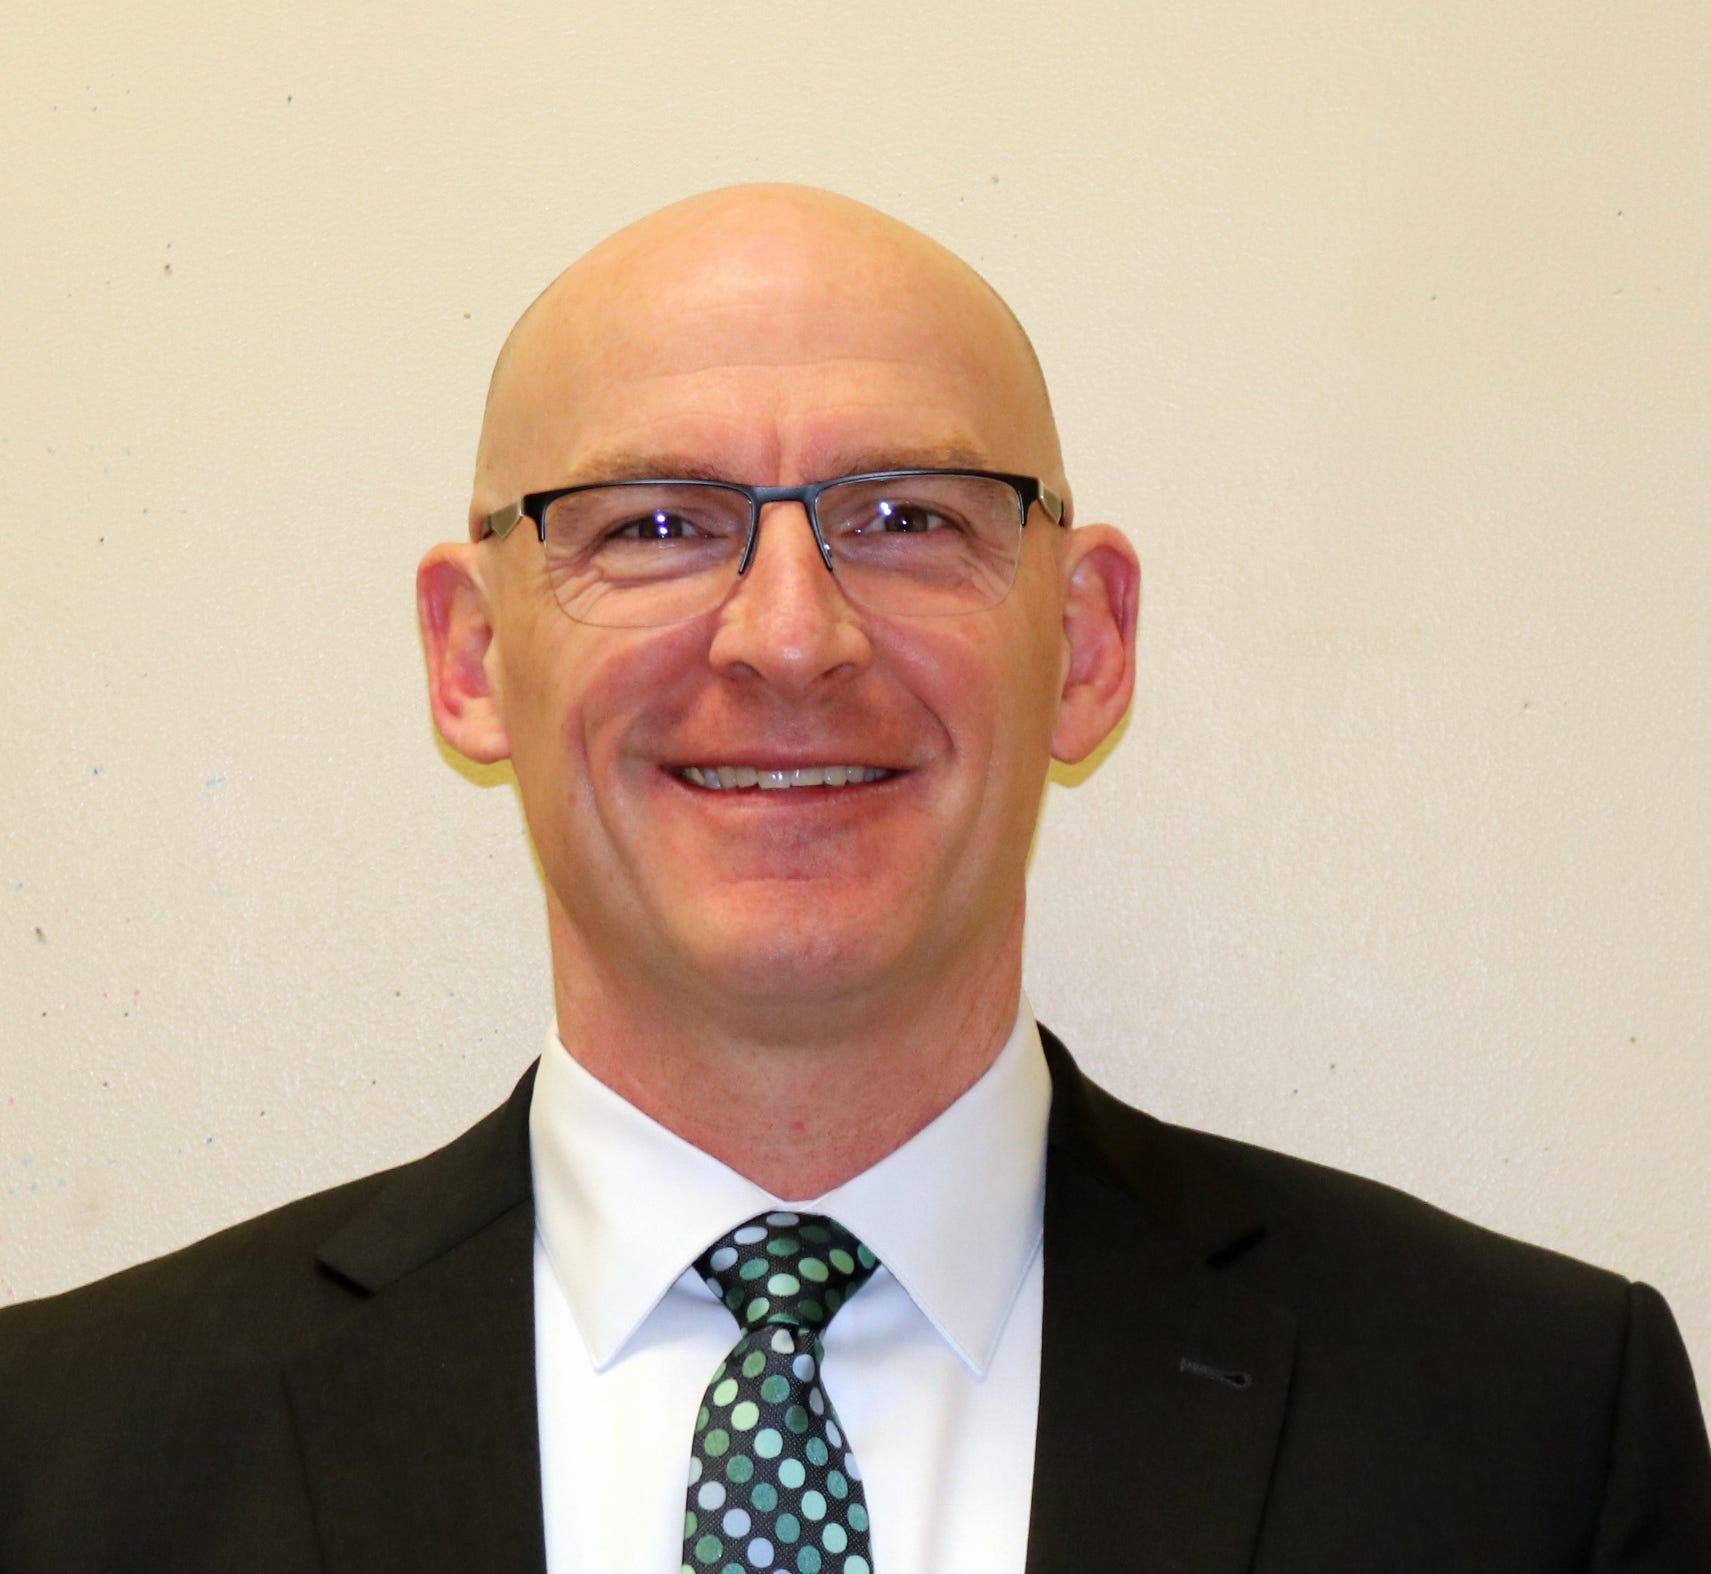 The South Kitsap School District school board has selected Tim Winter as its next superintendent. He is currently superintendent of the Clarkston School District.